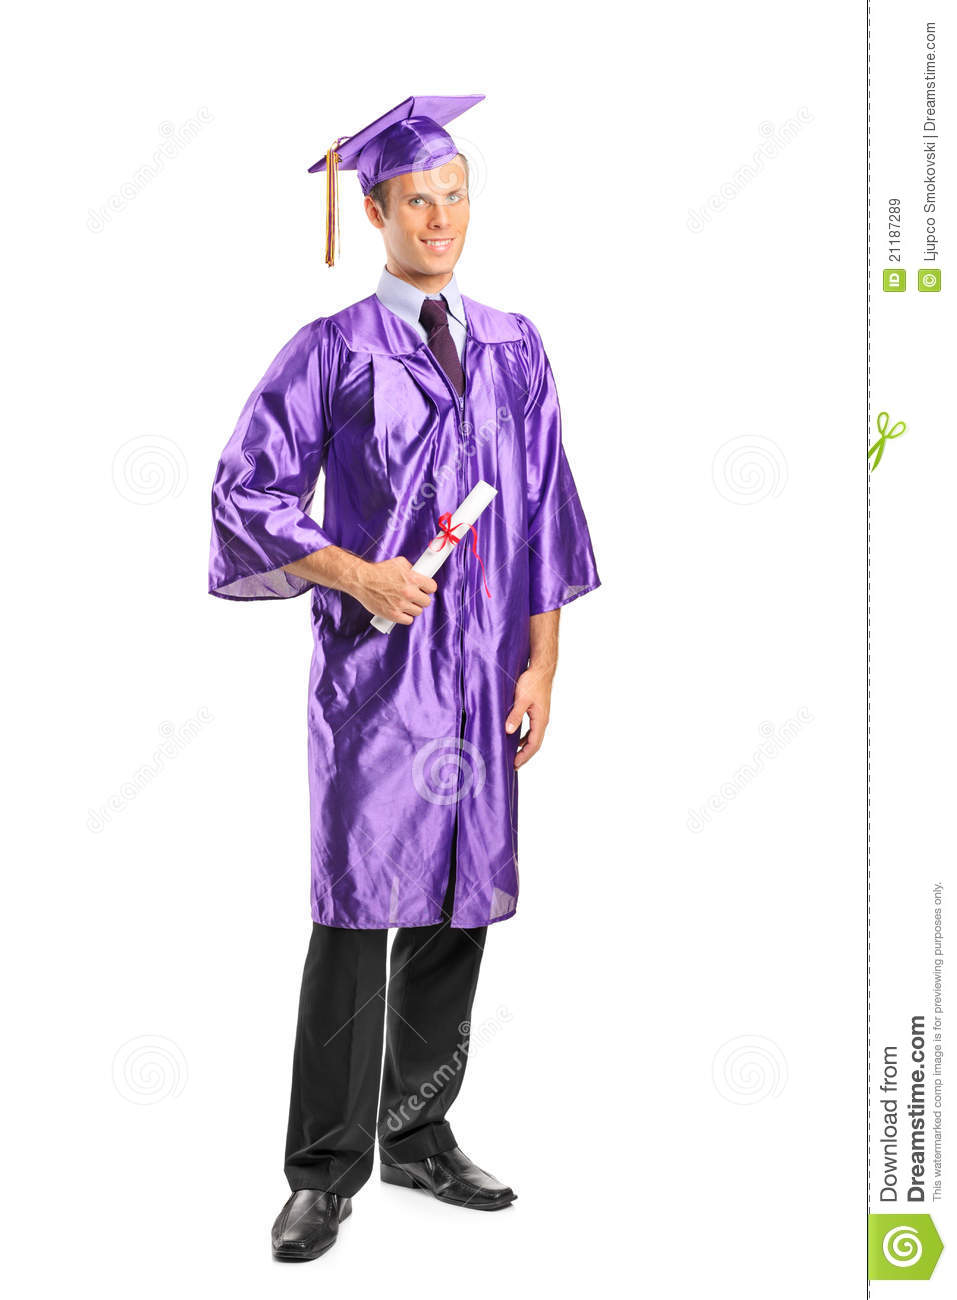 Graduate student holding a diploma